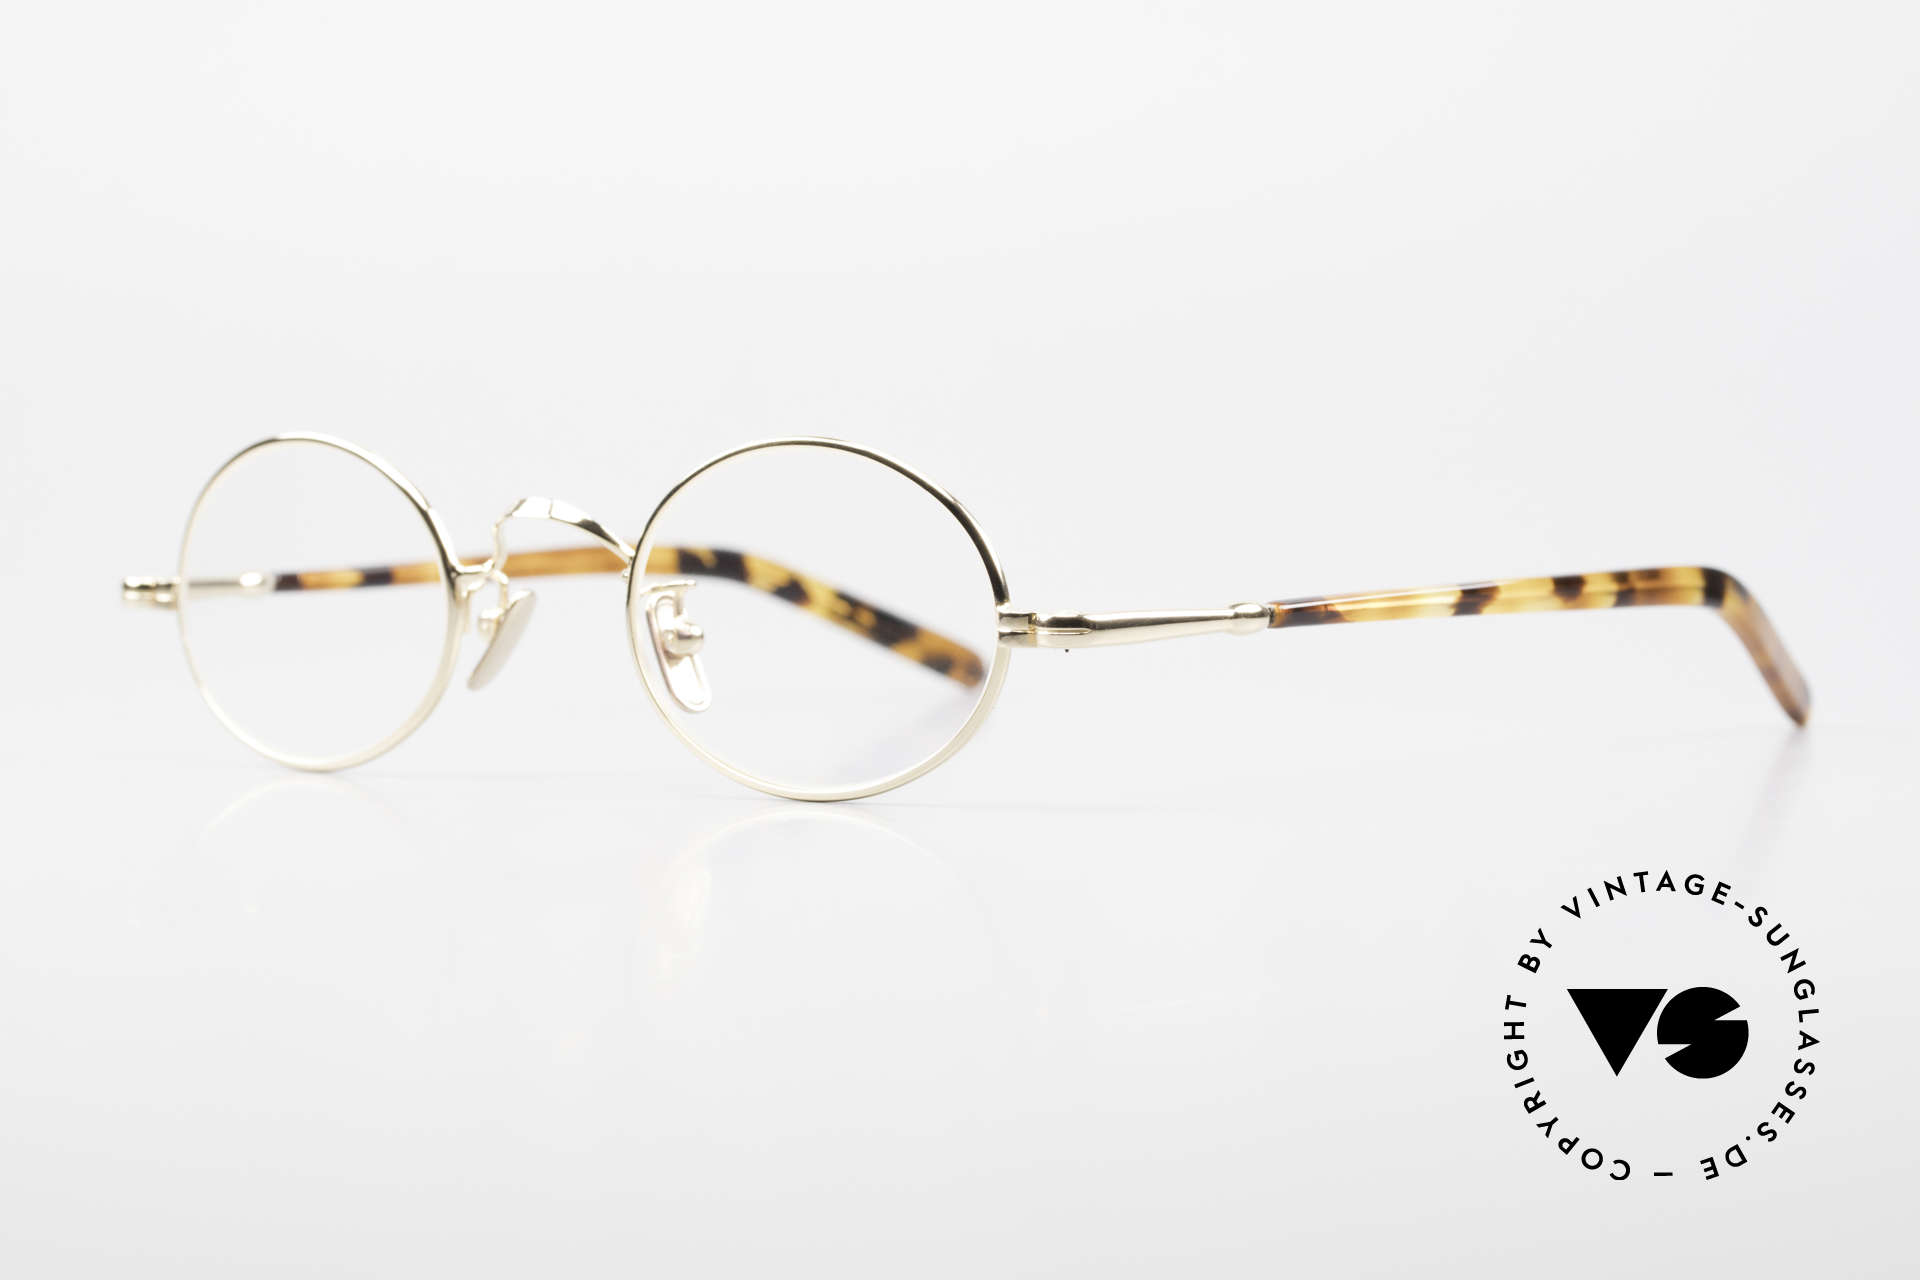 Lunor VA 100 Oval Lunor Glasses Gold Plated, LUNOR: honest craftsmanship with attention to details, Made for Men and Women